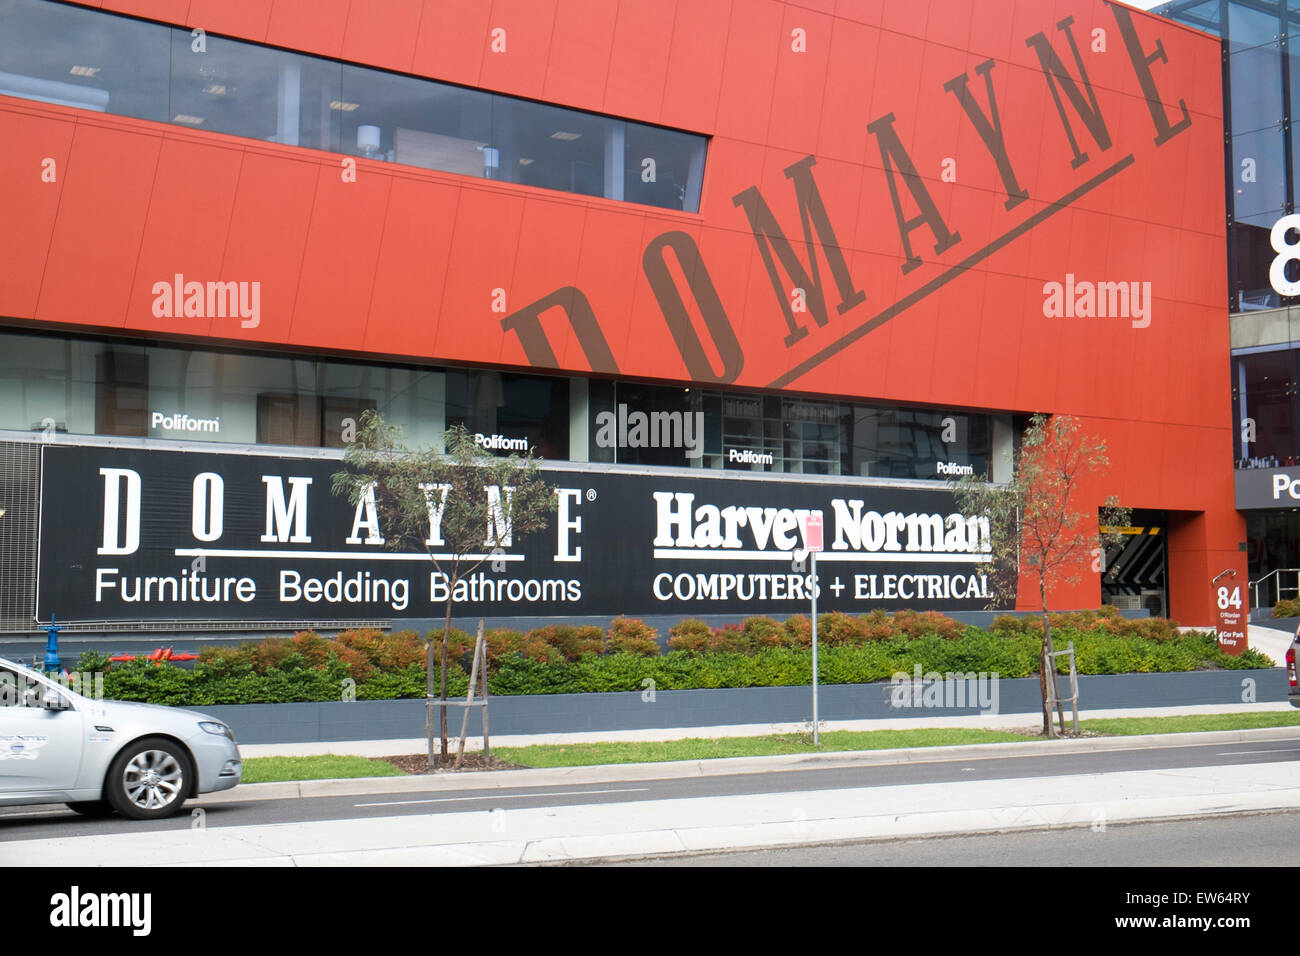 Domayne And Harvey Norman Household Furniture Stores In  Mascot,Sydney,Australia